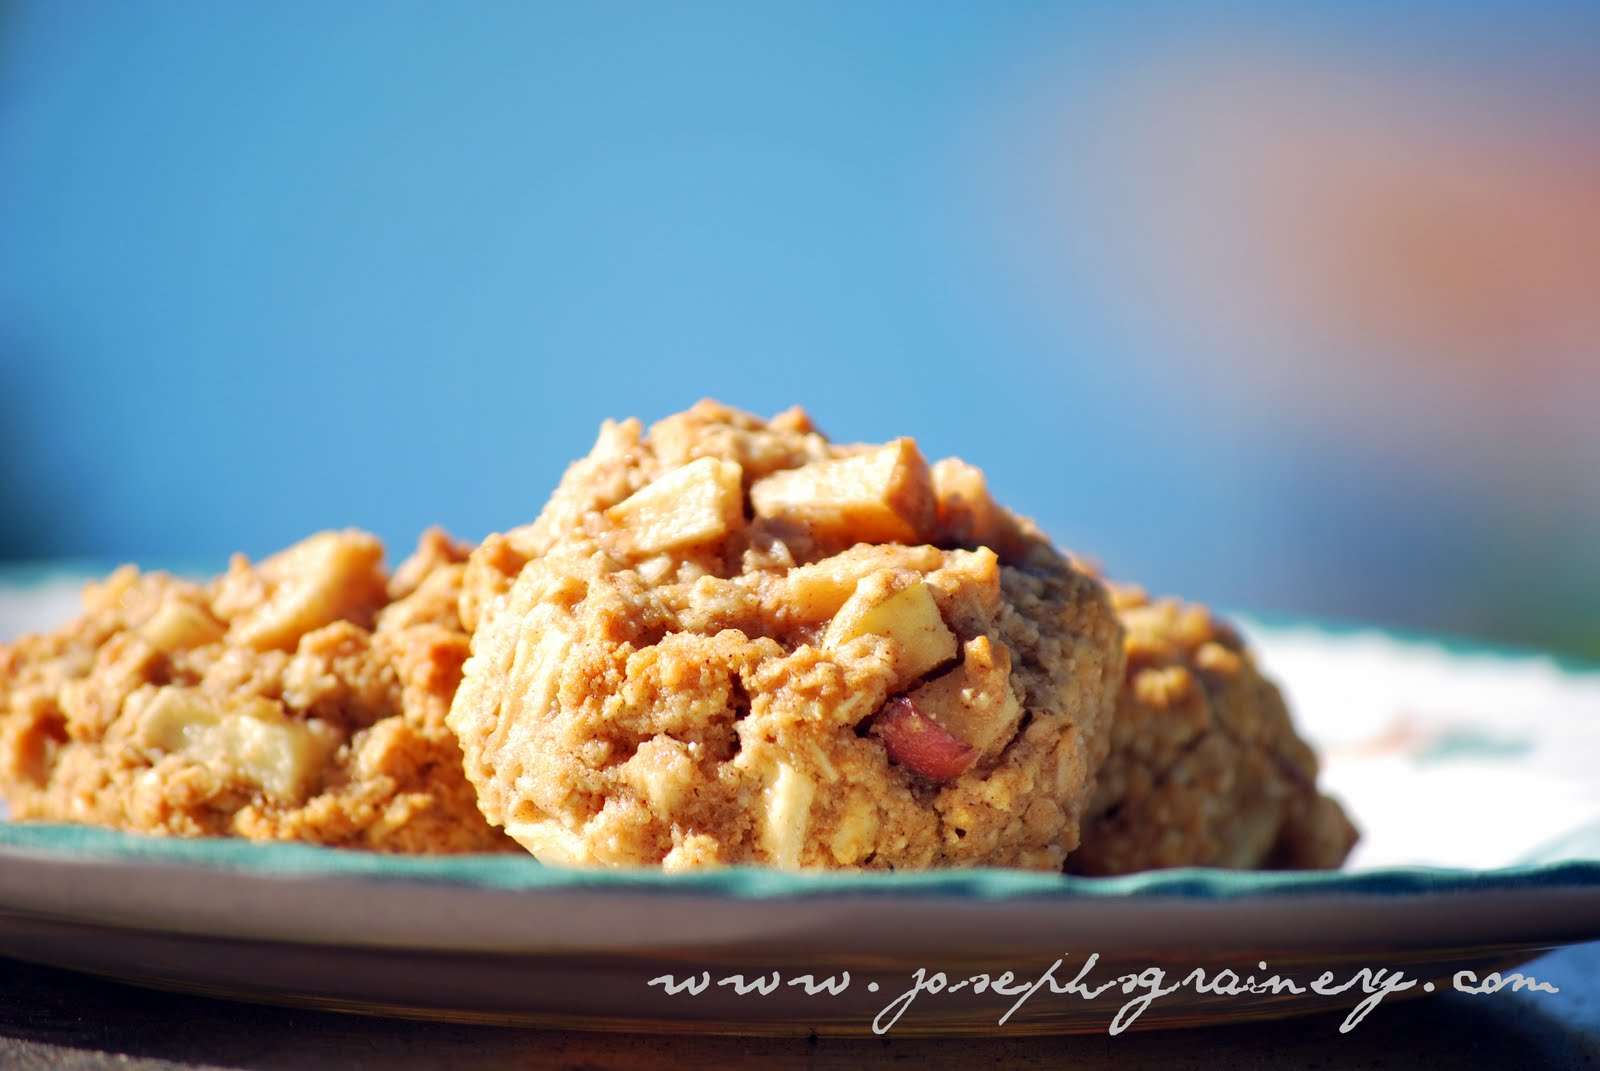 Stick them in the oven and enjoy a tasty and halfway healthy treat in ...